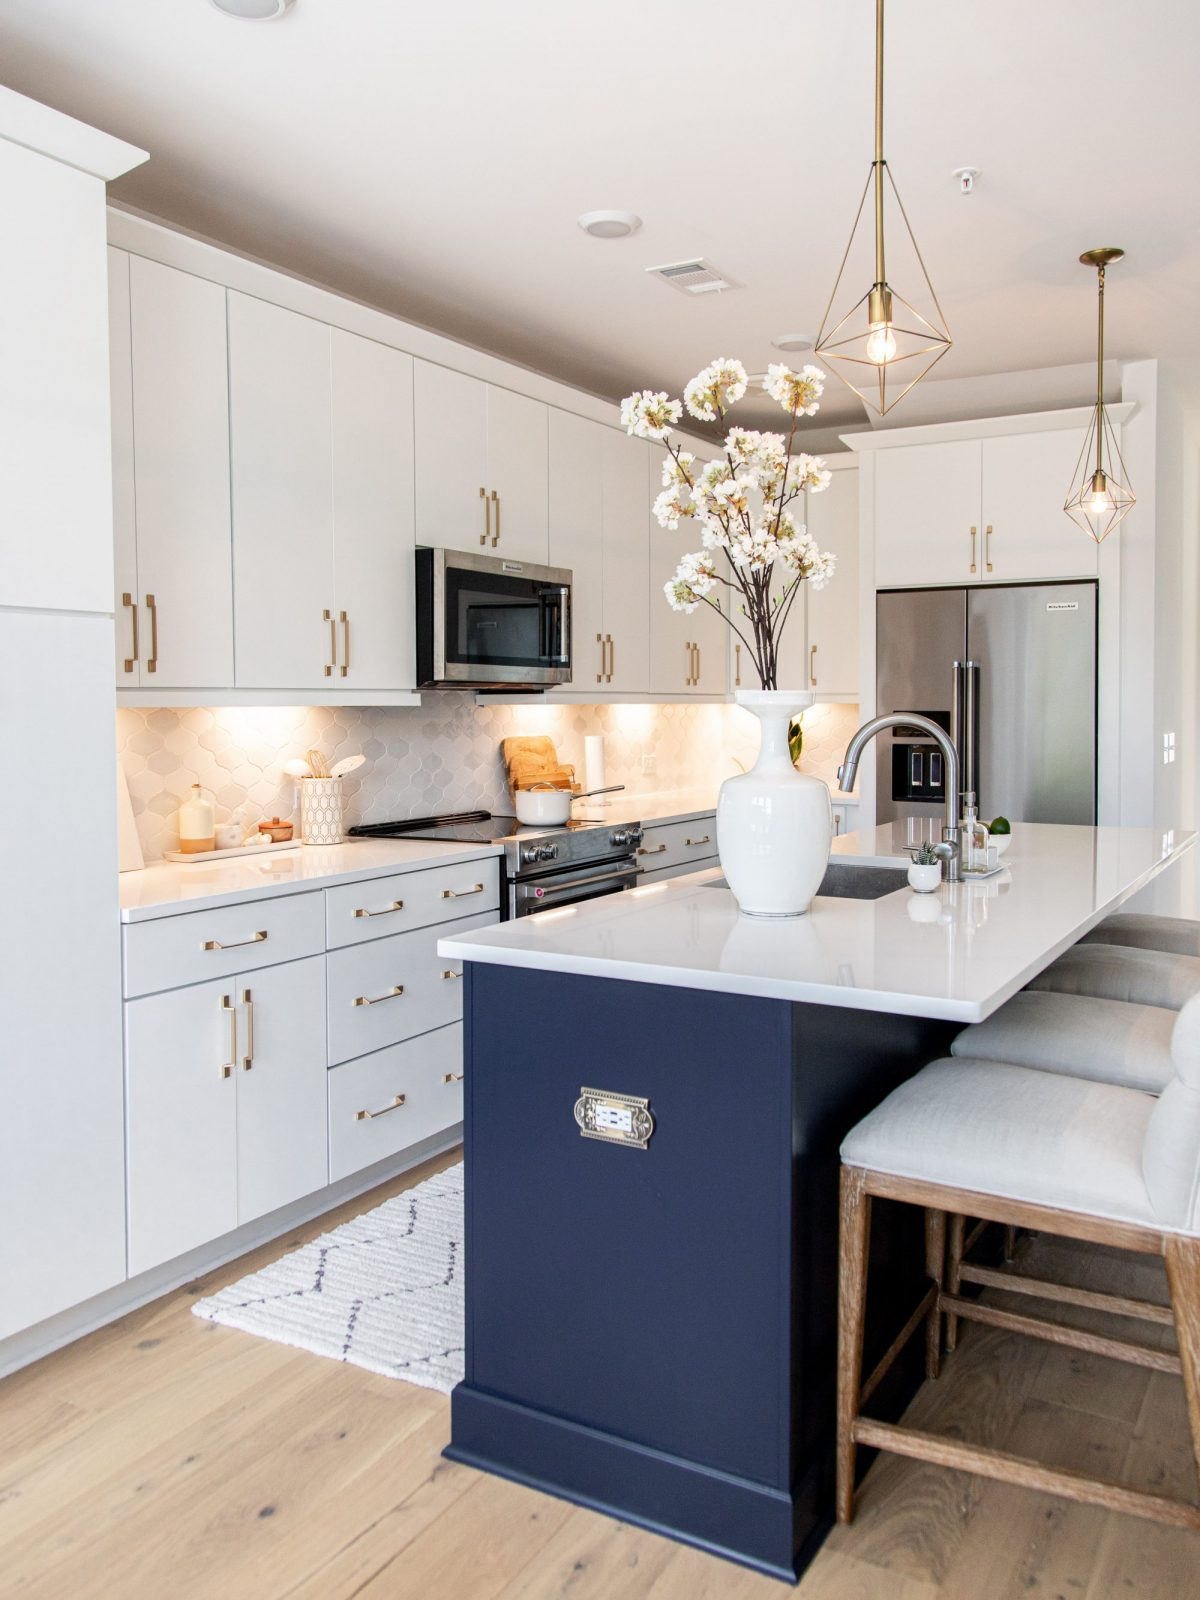 Bright white kitchen, kitchen makeover, kitchen transformation, schaub and company san marco collection, frontgate review, fontgate Gramercy Bar & Counter Stool in Sandstone, kitchen renovation, luxury kitchen design, kitchen before and after